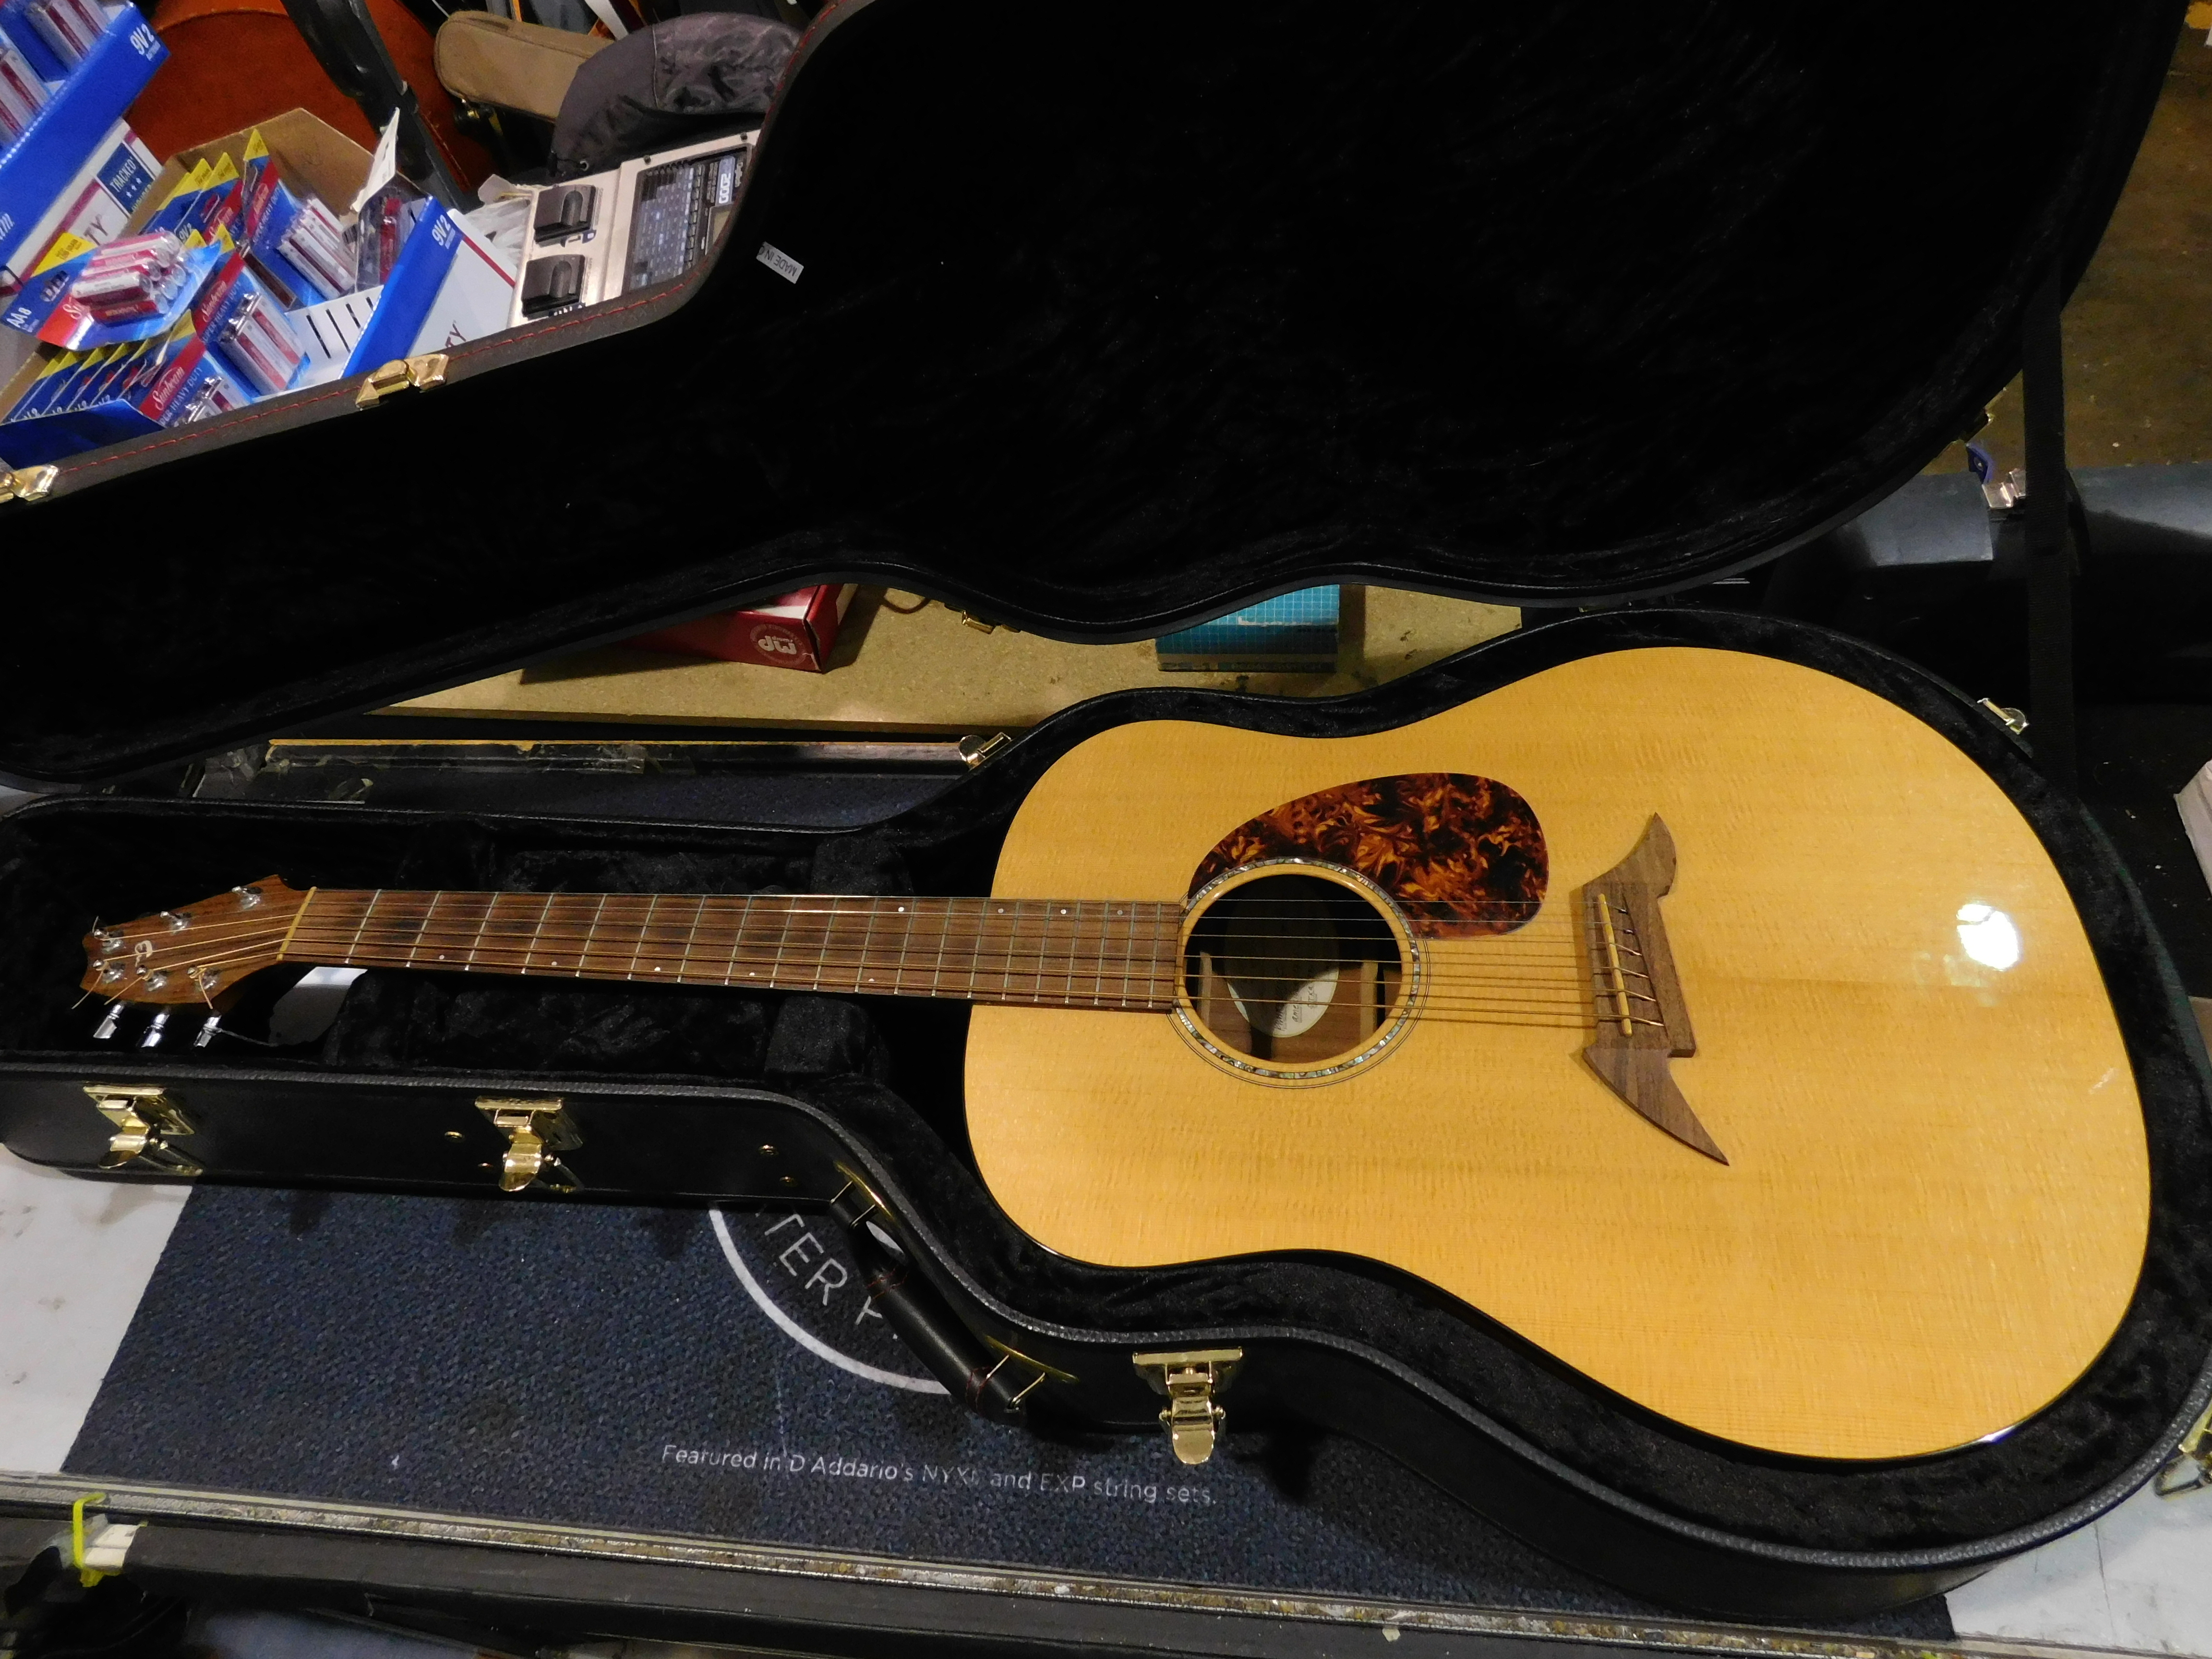 BREEDLOVE American Series D20/SM Acoustic Guitar with Case - LOCAL PICKUP ONLY!